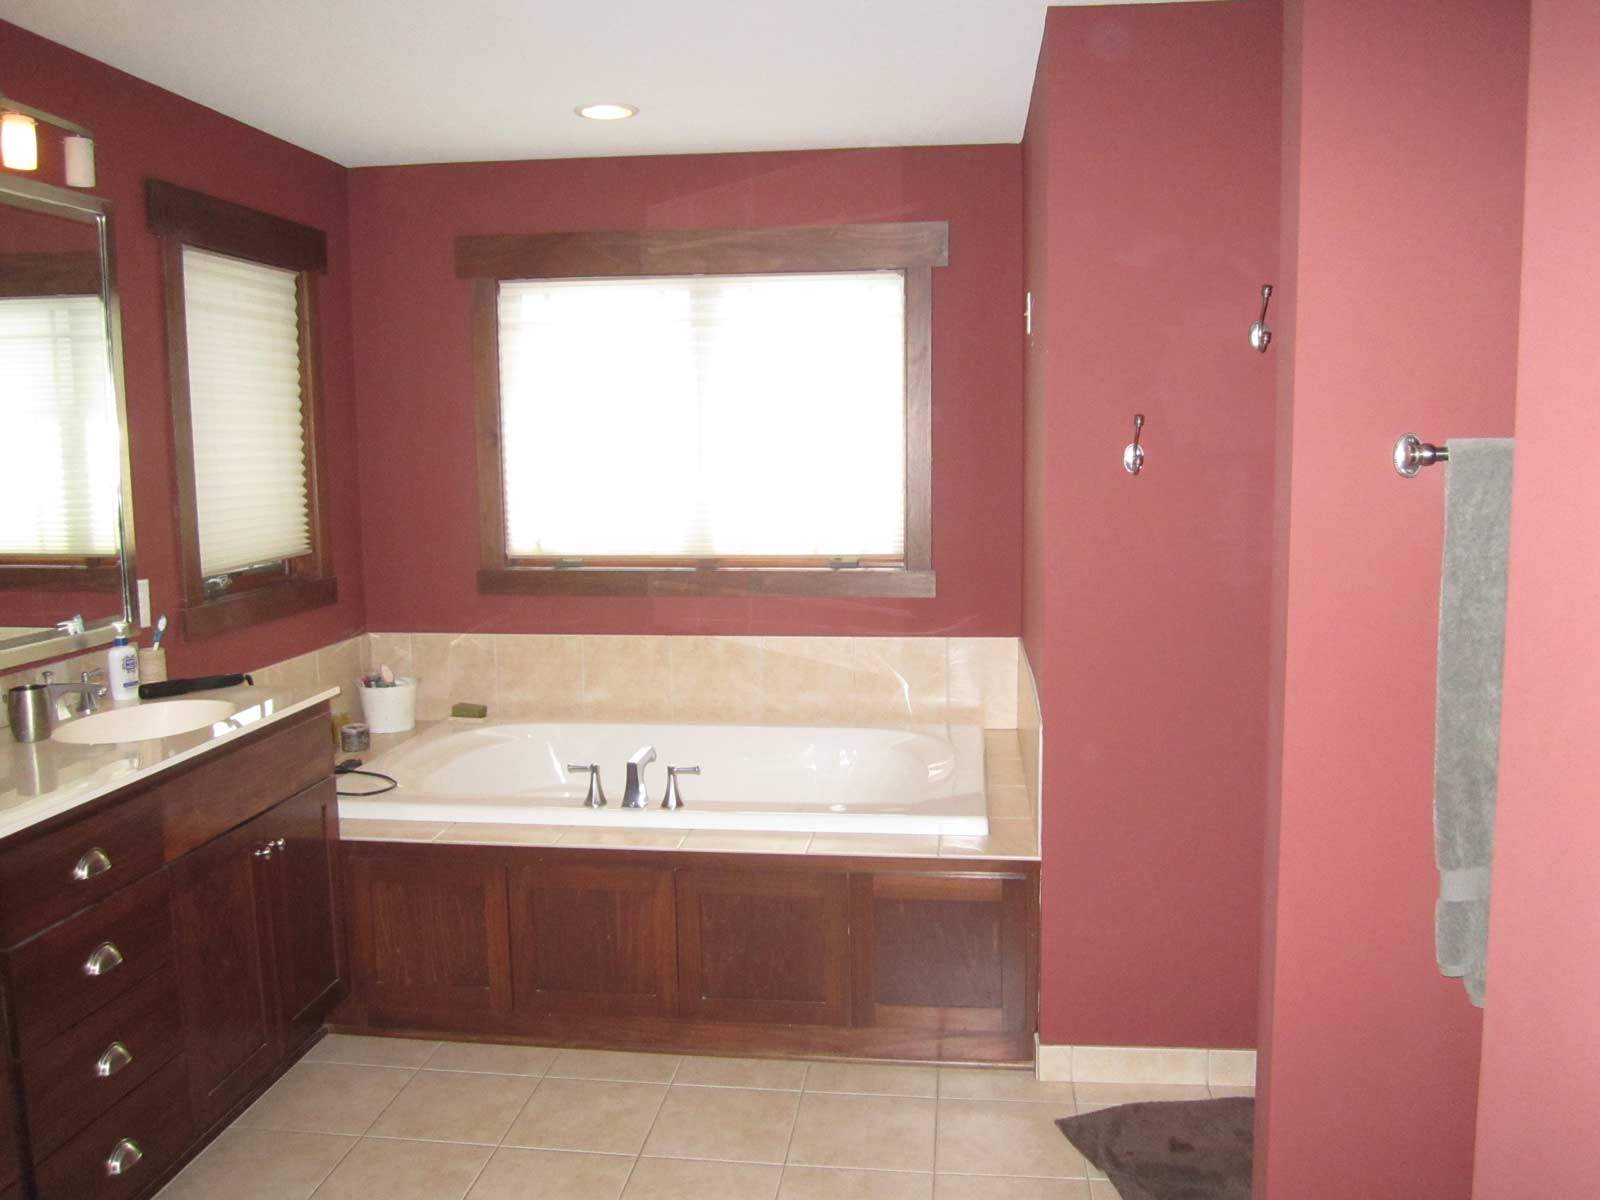 Bathroom Remodel Minneapolis Minneapolis Bathroom Remodeling K2